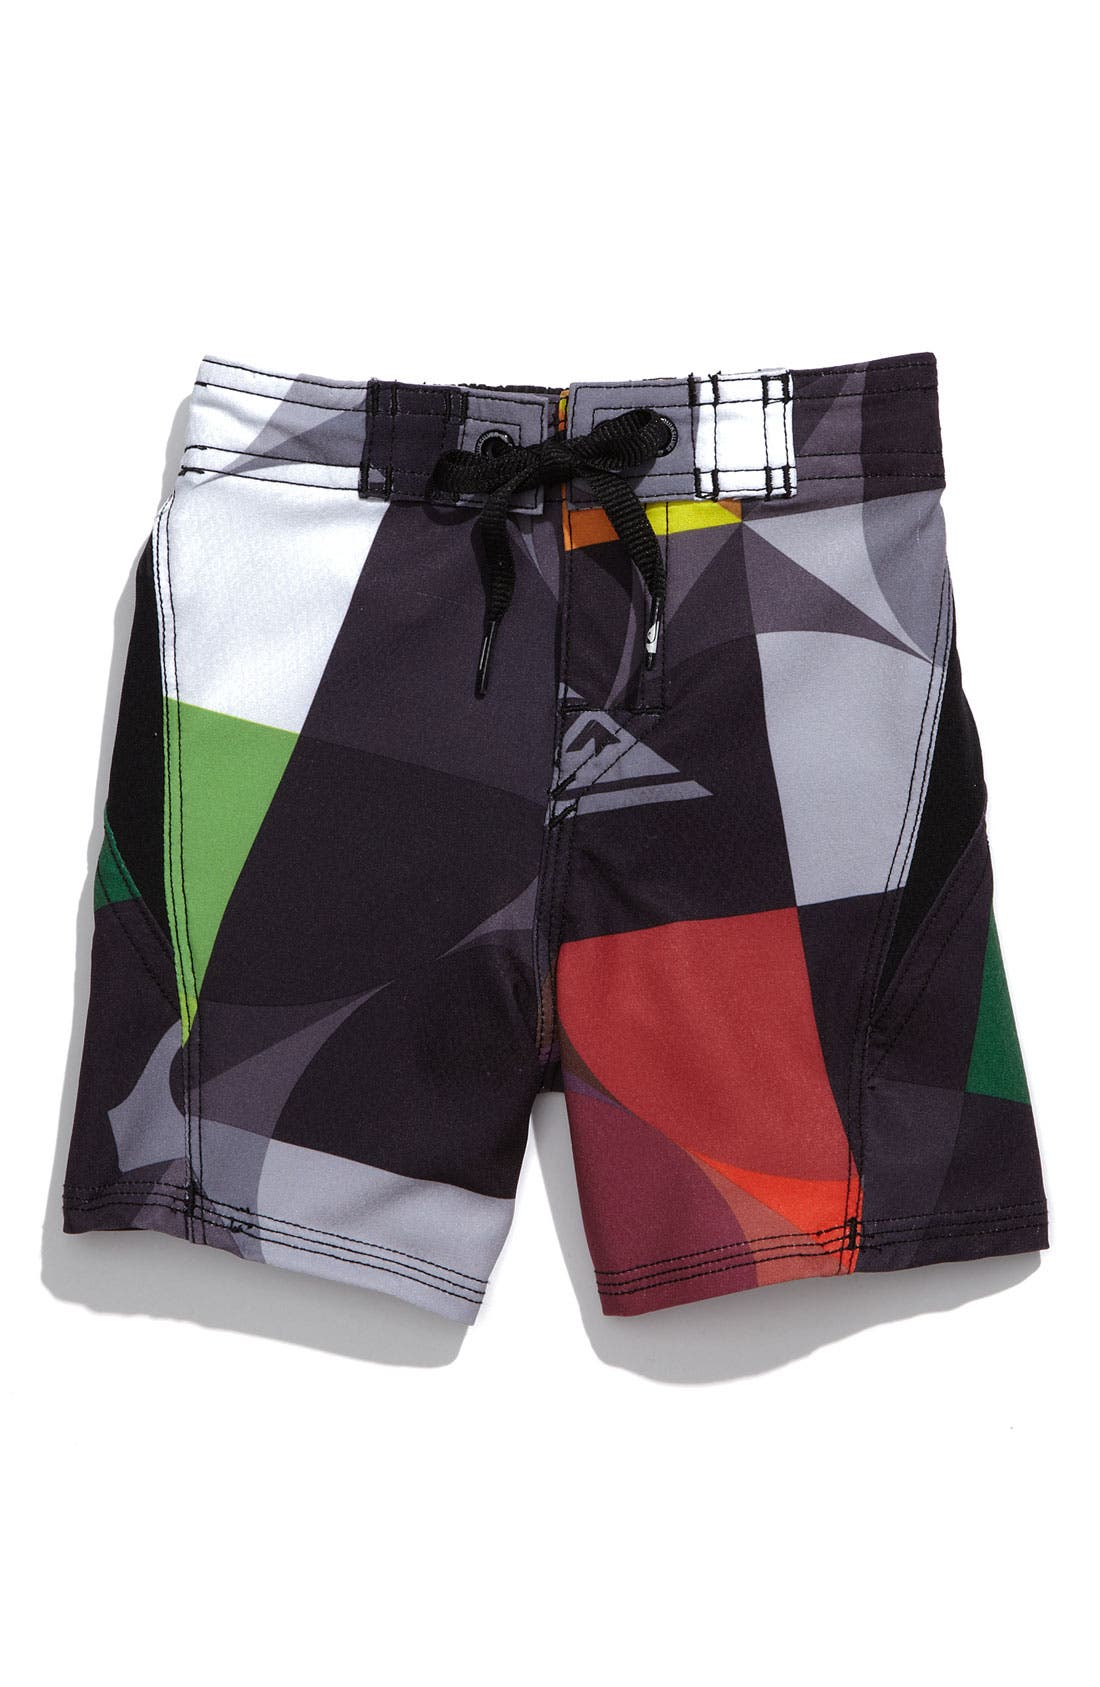 Alternate Image 1 Selected - Quiksilver 'Cypher Buzzed' Board Shorts (Infant)